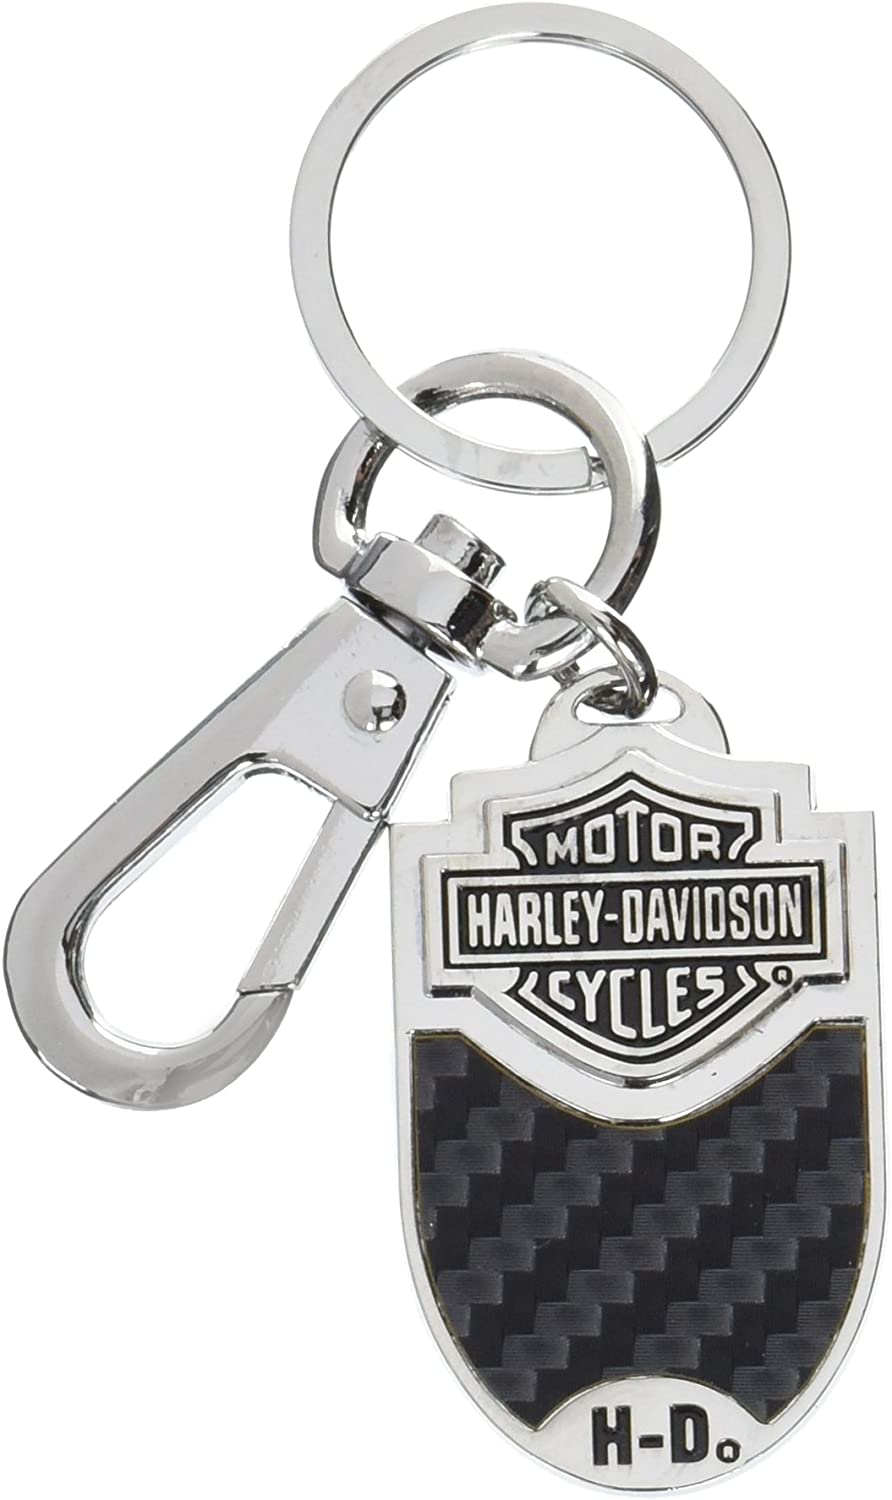 Best Harley Davidson Gifts Ideas Review Buying Guide In 2020